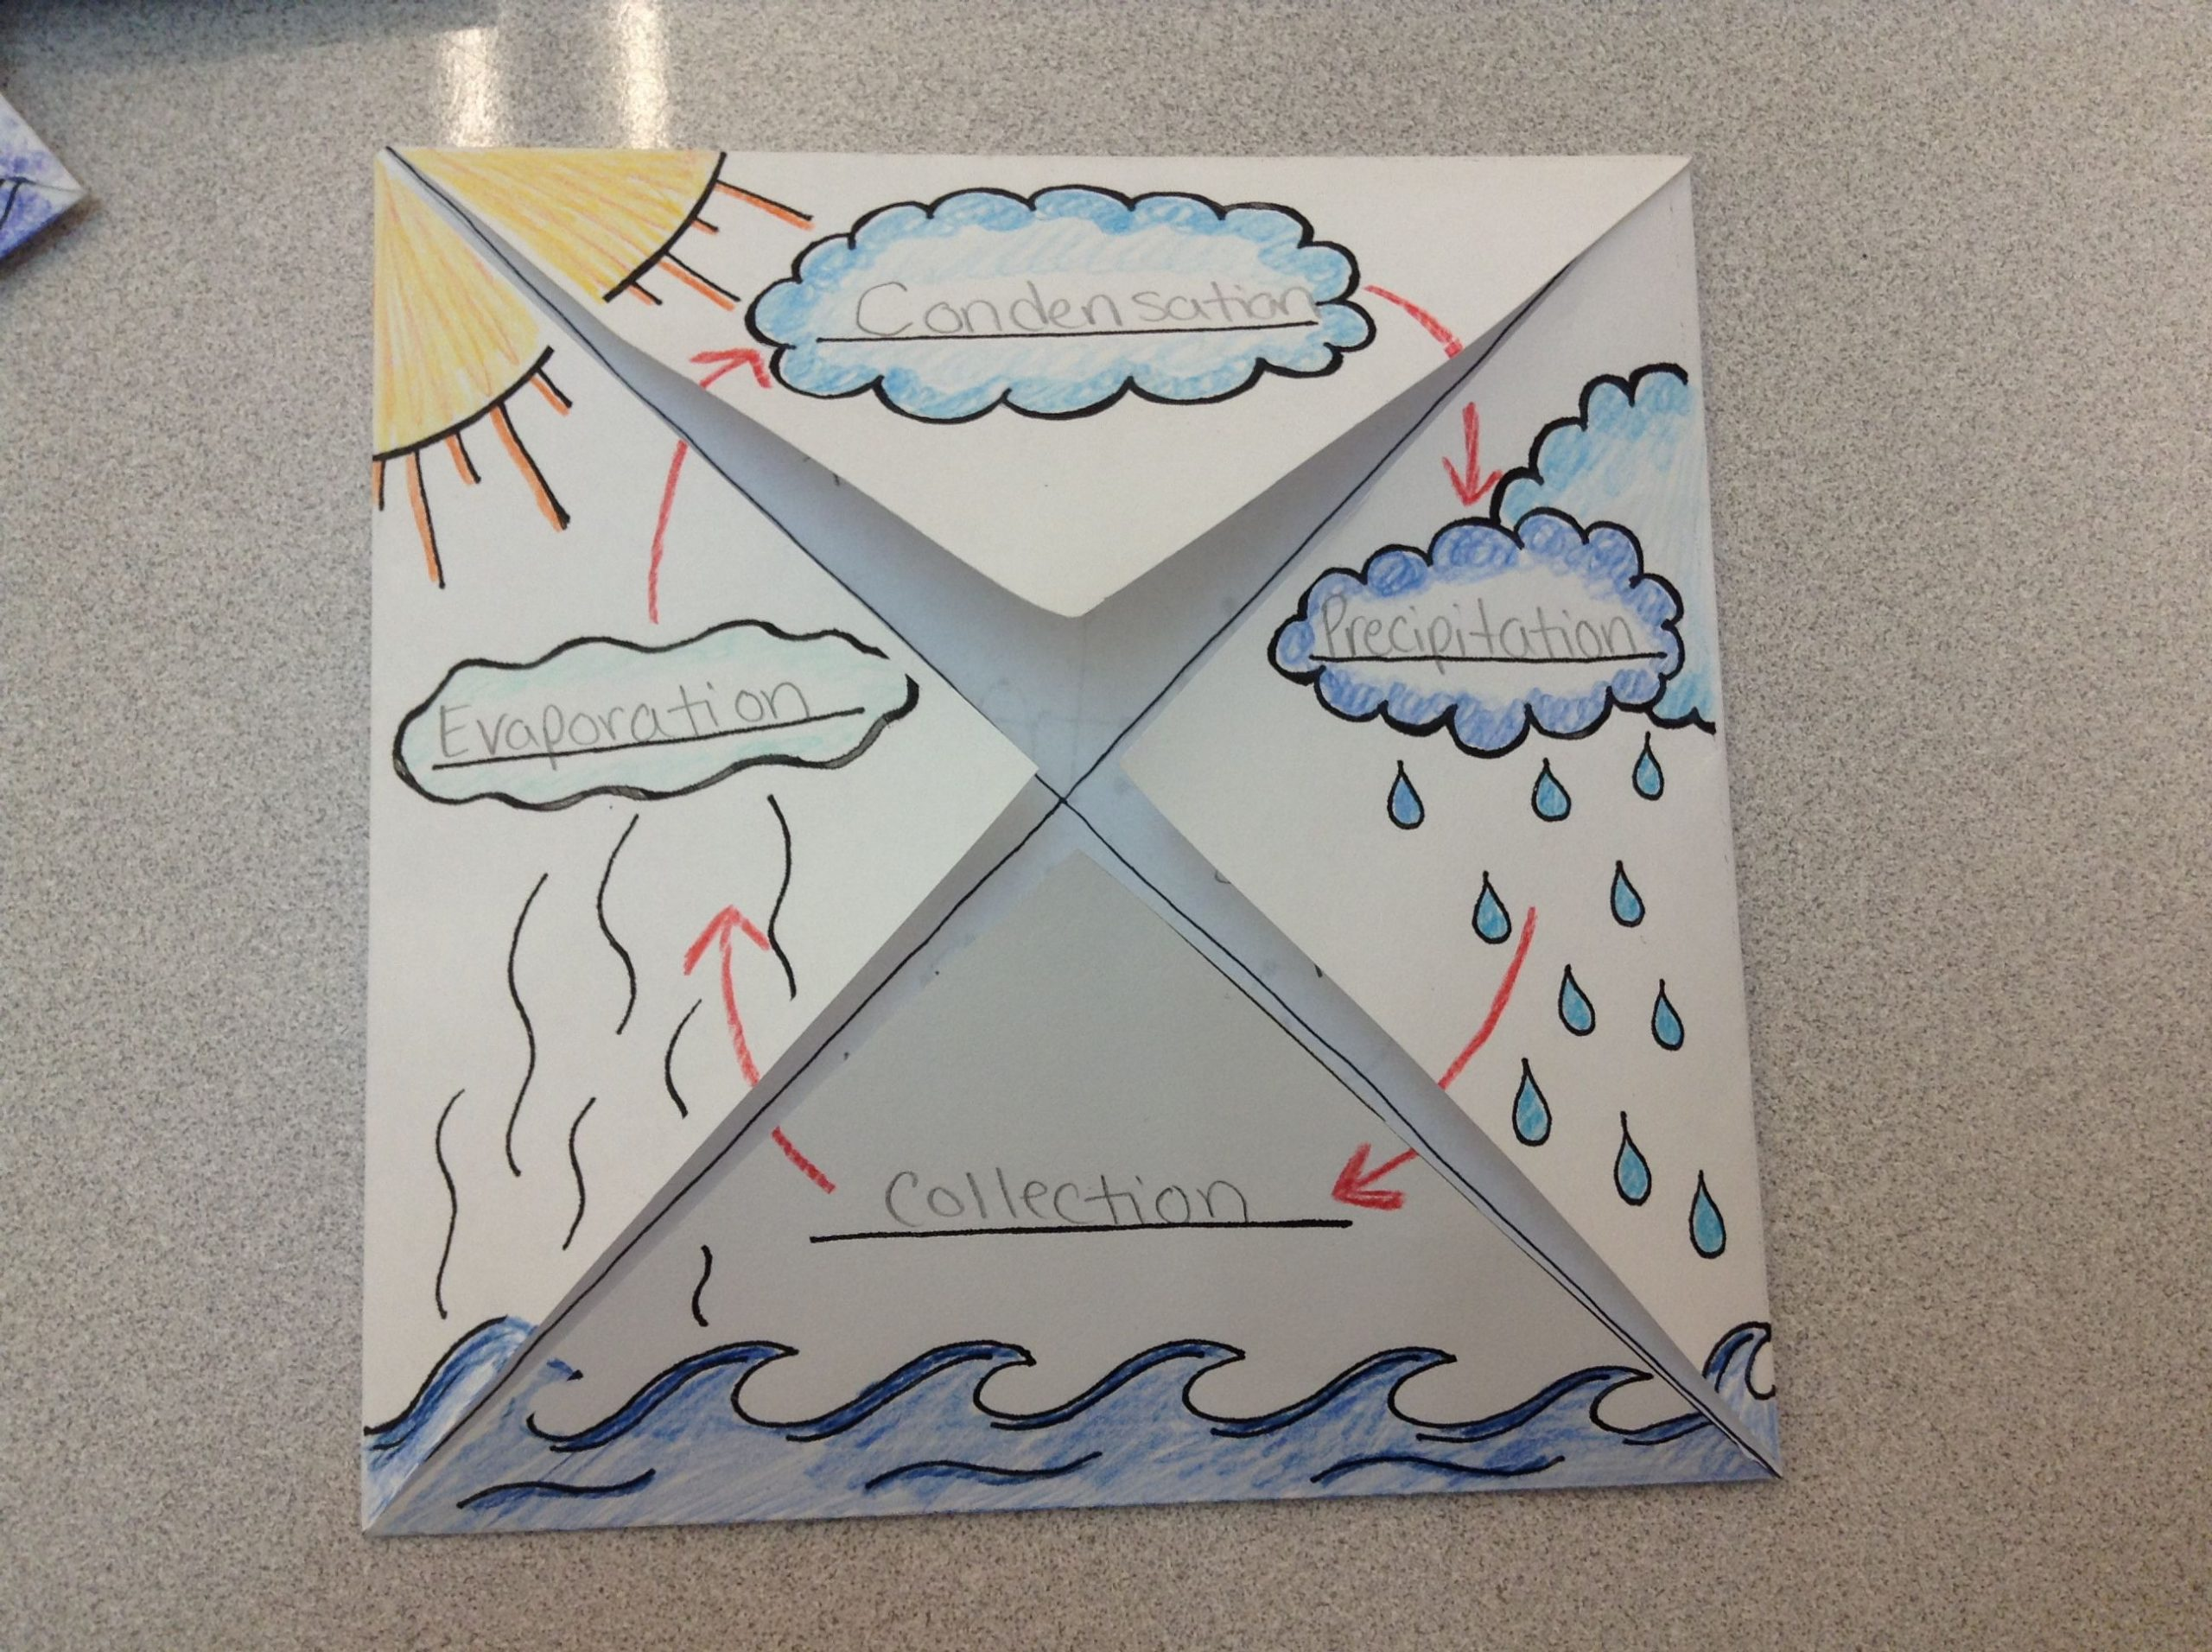 Water Cycle Worksheet 2nd Grade the Water Cycle Foldable Graphic organizer 2nd Grade